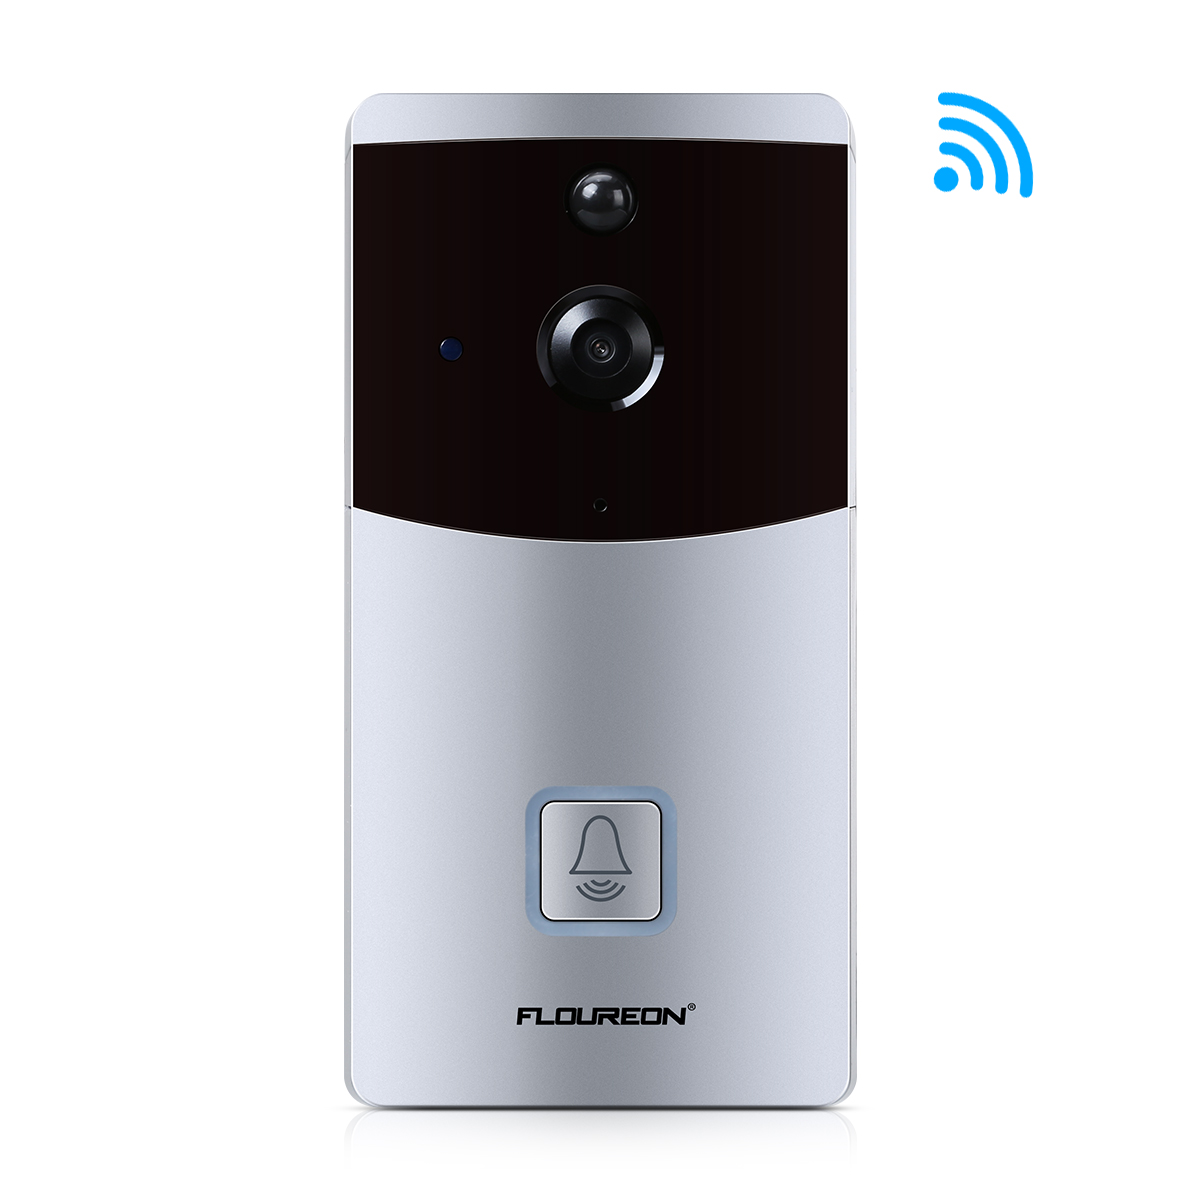 FLOUREON WIFI Smart Video Doorbell Security Camera SD slot 2-Way Talk Night Vision Motion DetectionFLOUREON WIFI Smart Video Doorbell Security Camera SD slot 2-Way Talk Night Vision Motion Detection